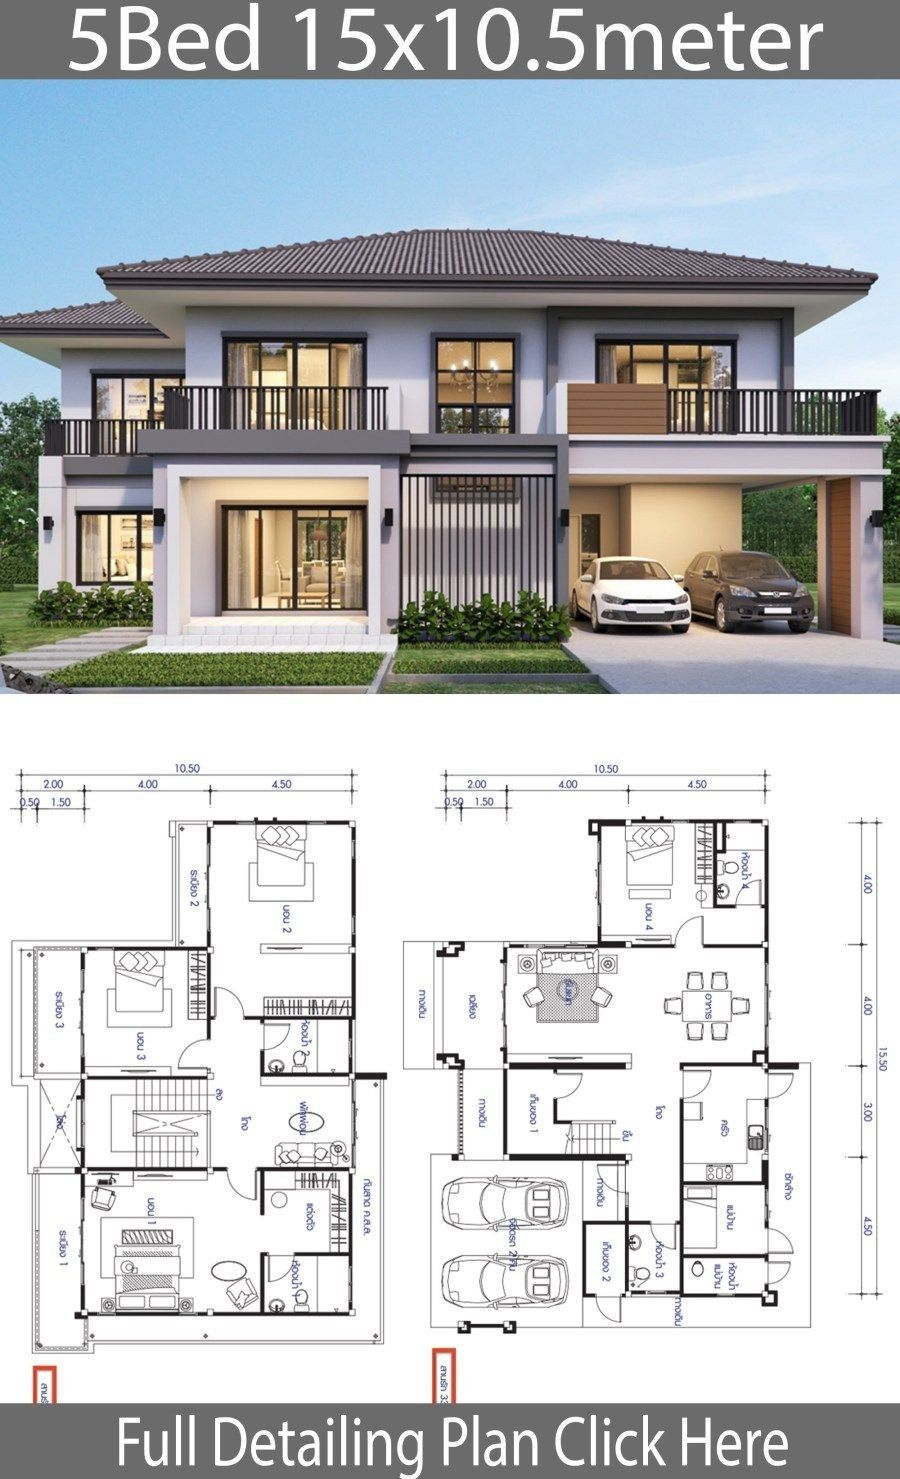 Modern House Architecture Plans House Design Plan 15 5x10 5m With 5 Bedrooms In 2020 Model House Plan Architectural House Plans Bungalow House Plans